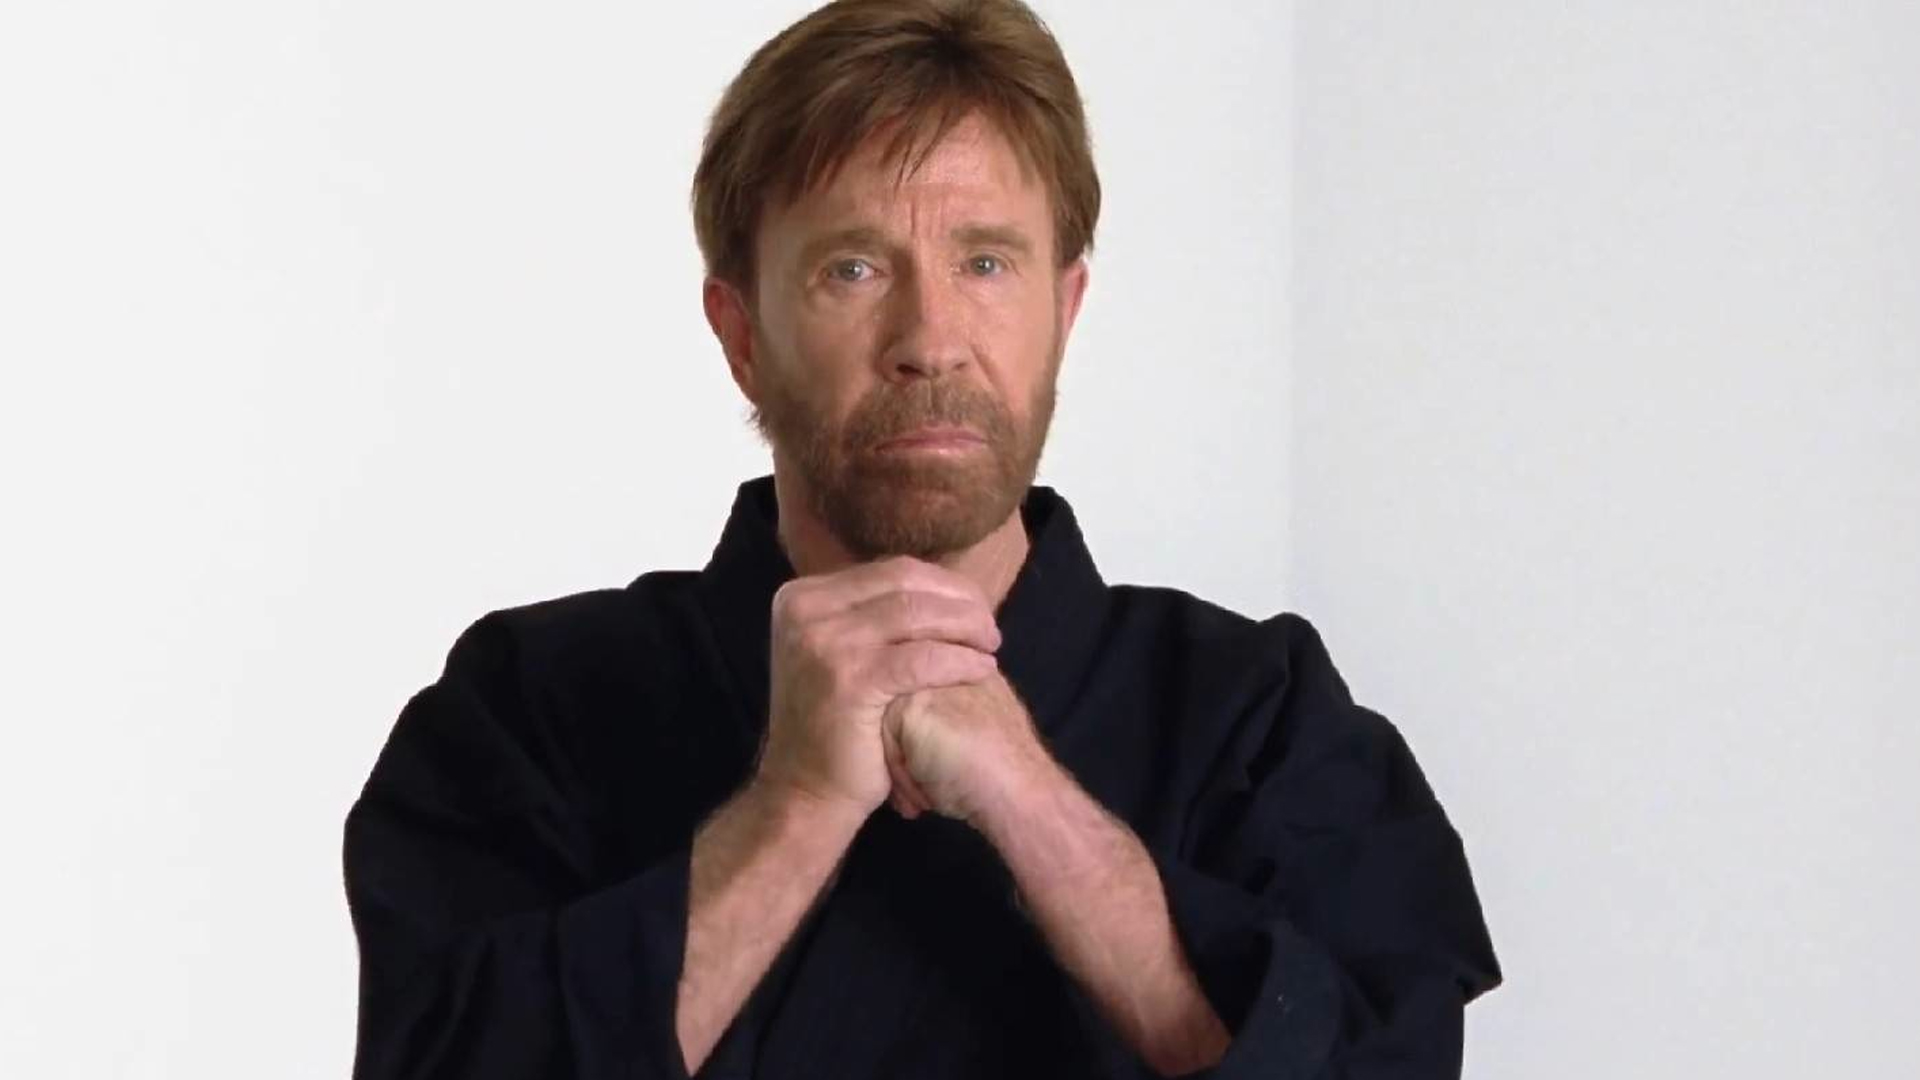 Chuck Norris Backgrounds on Wallpapers Vista